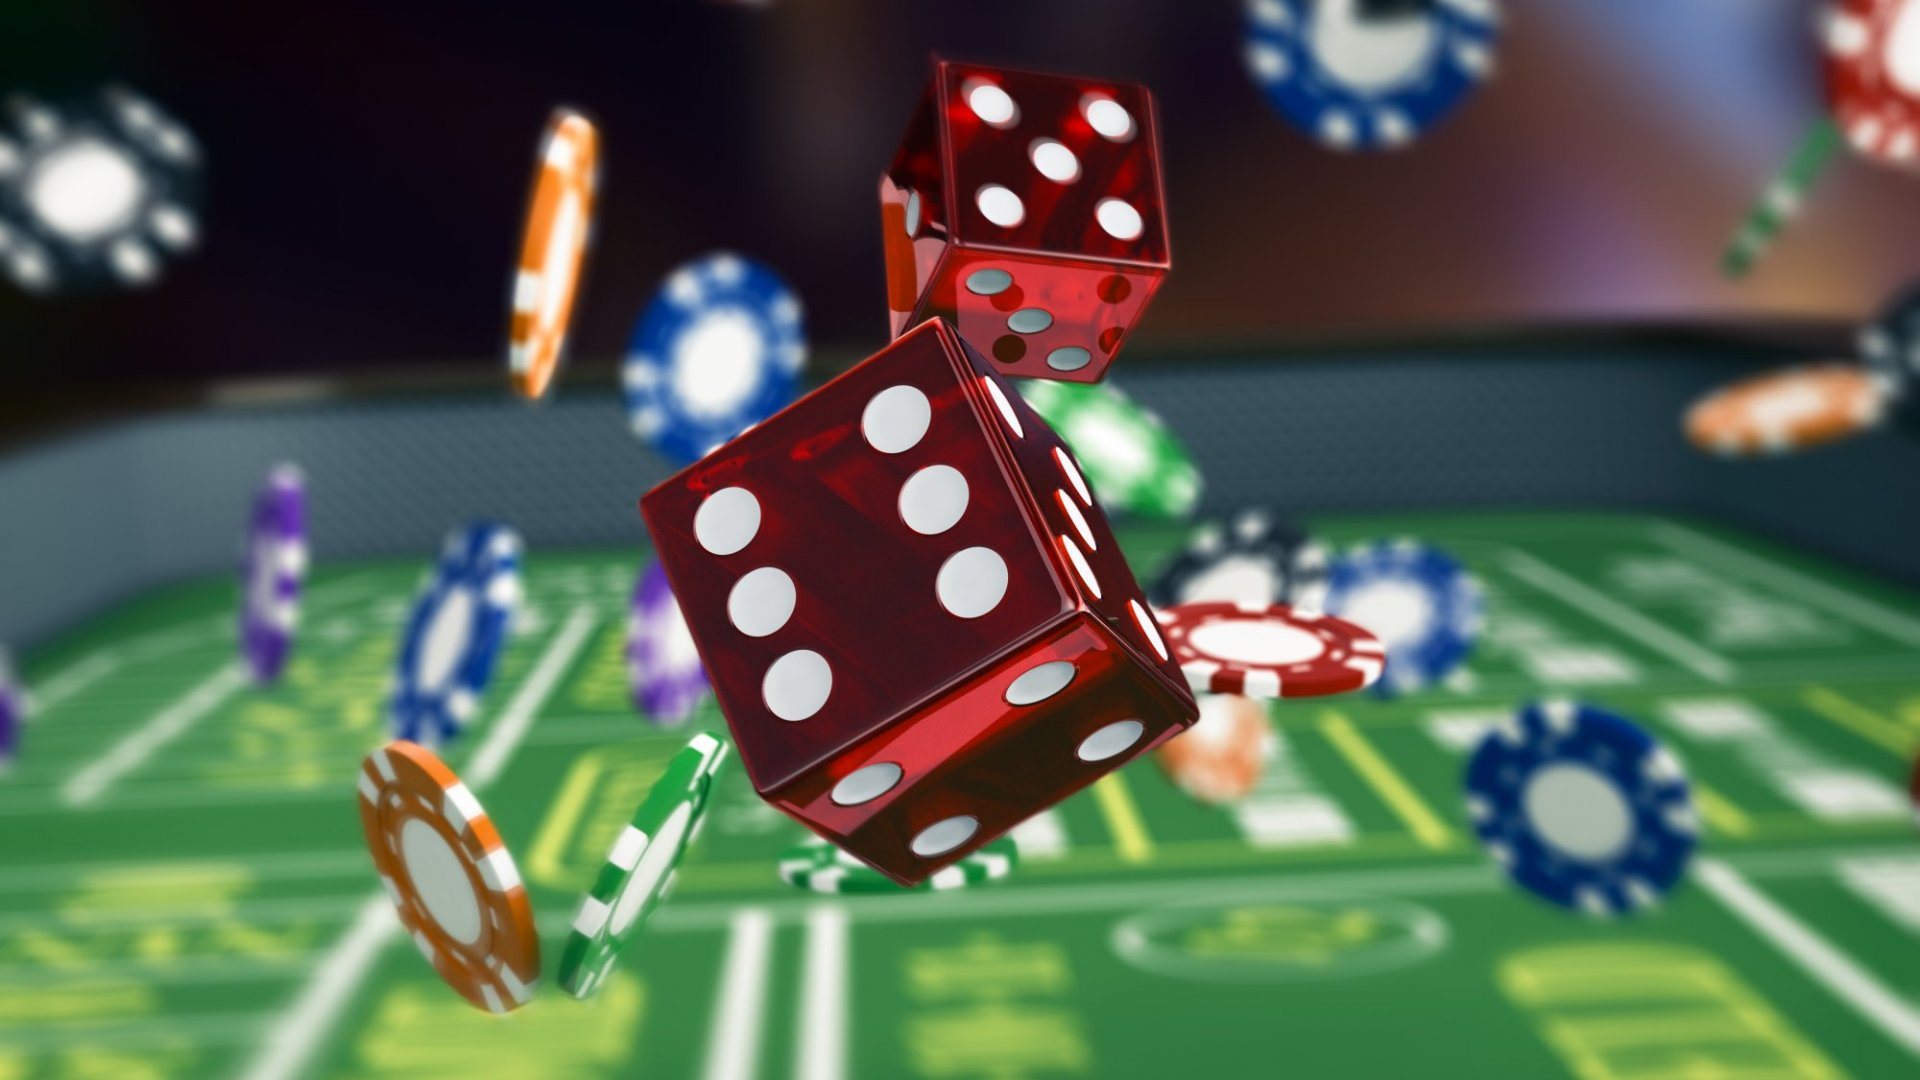 Want To Play Casino Games On Your Phone? Use These Tips!